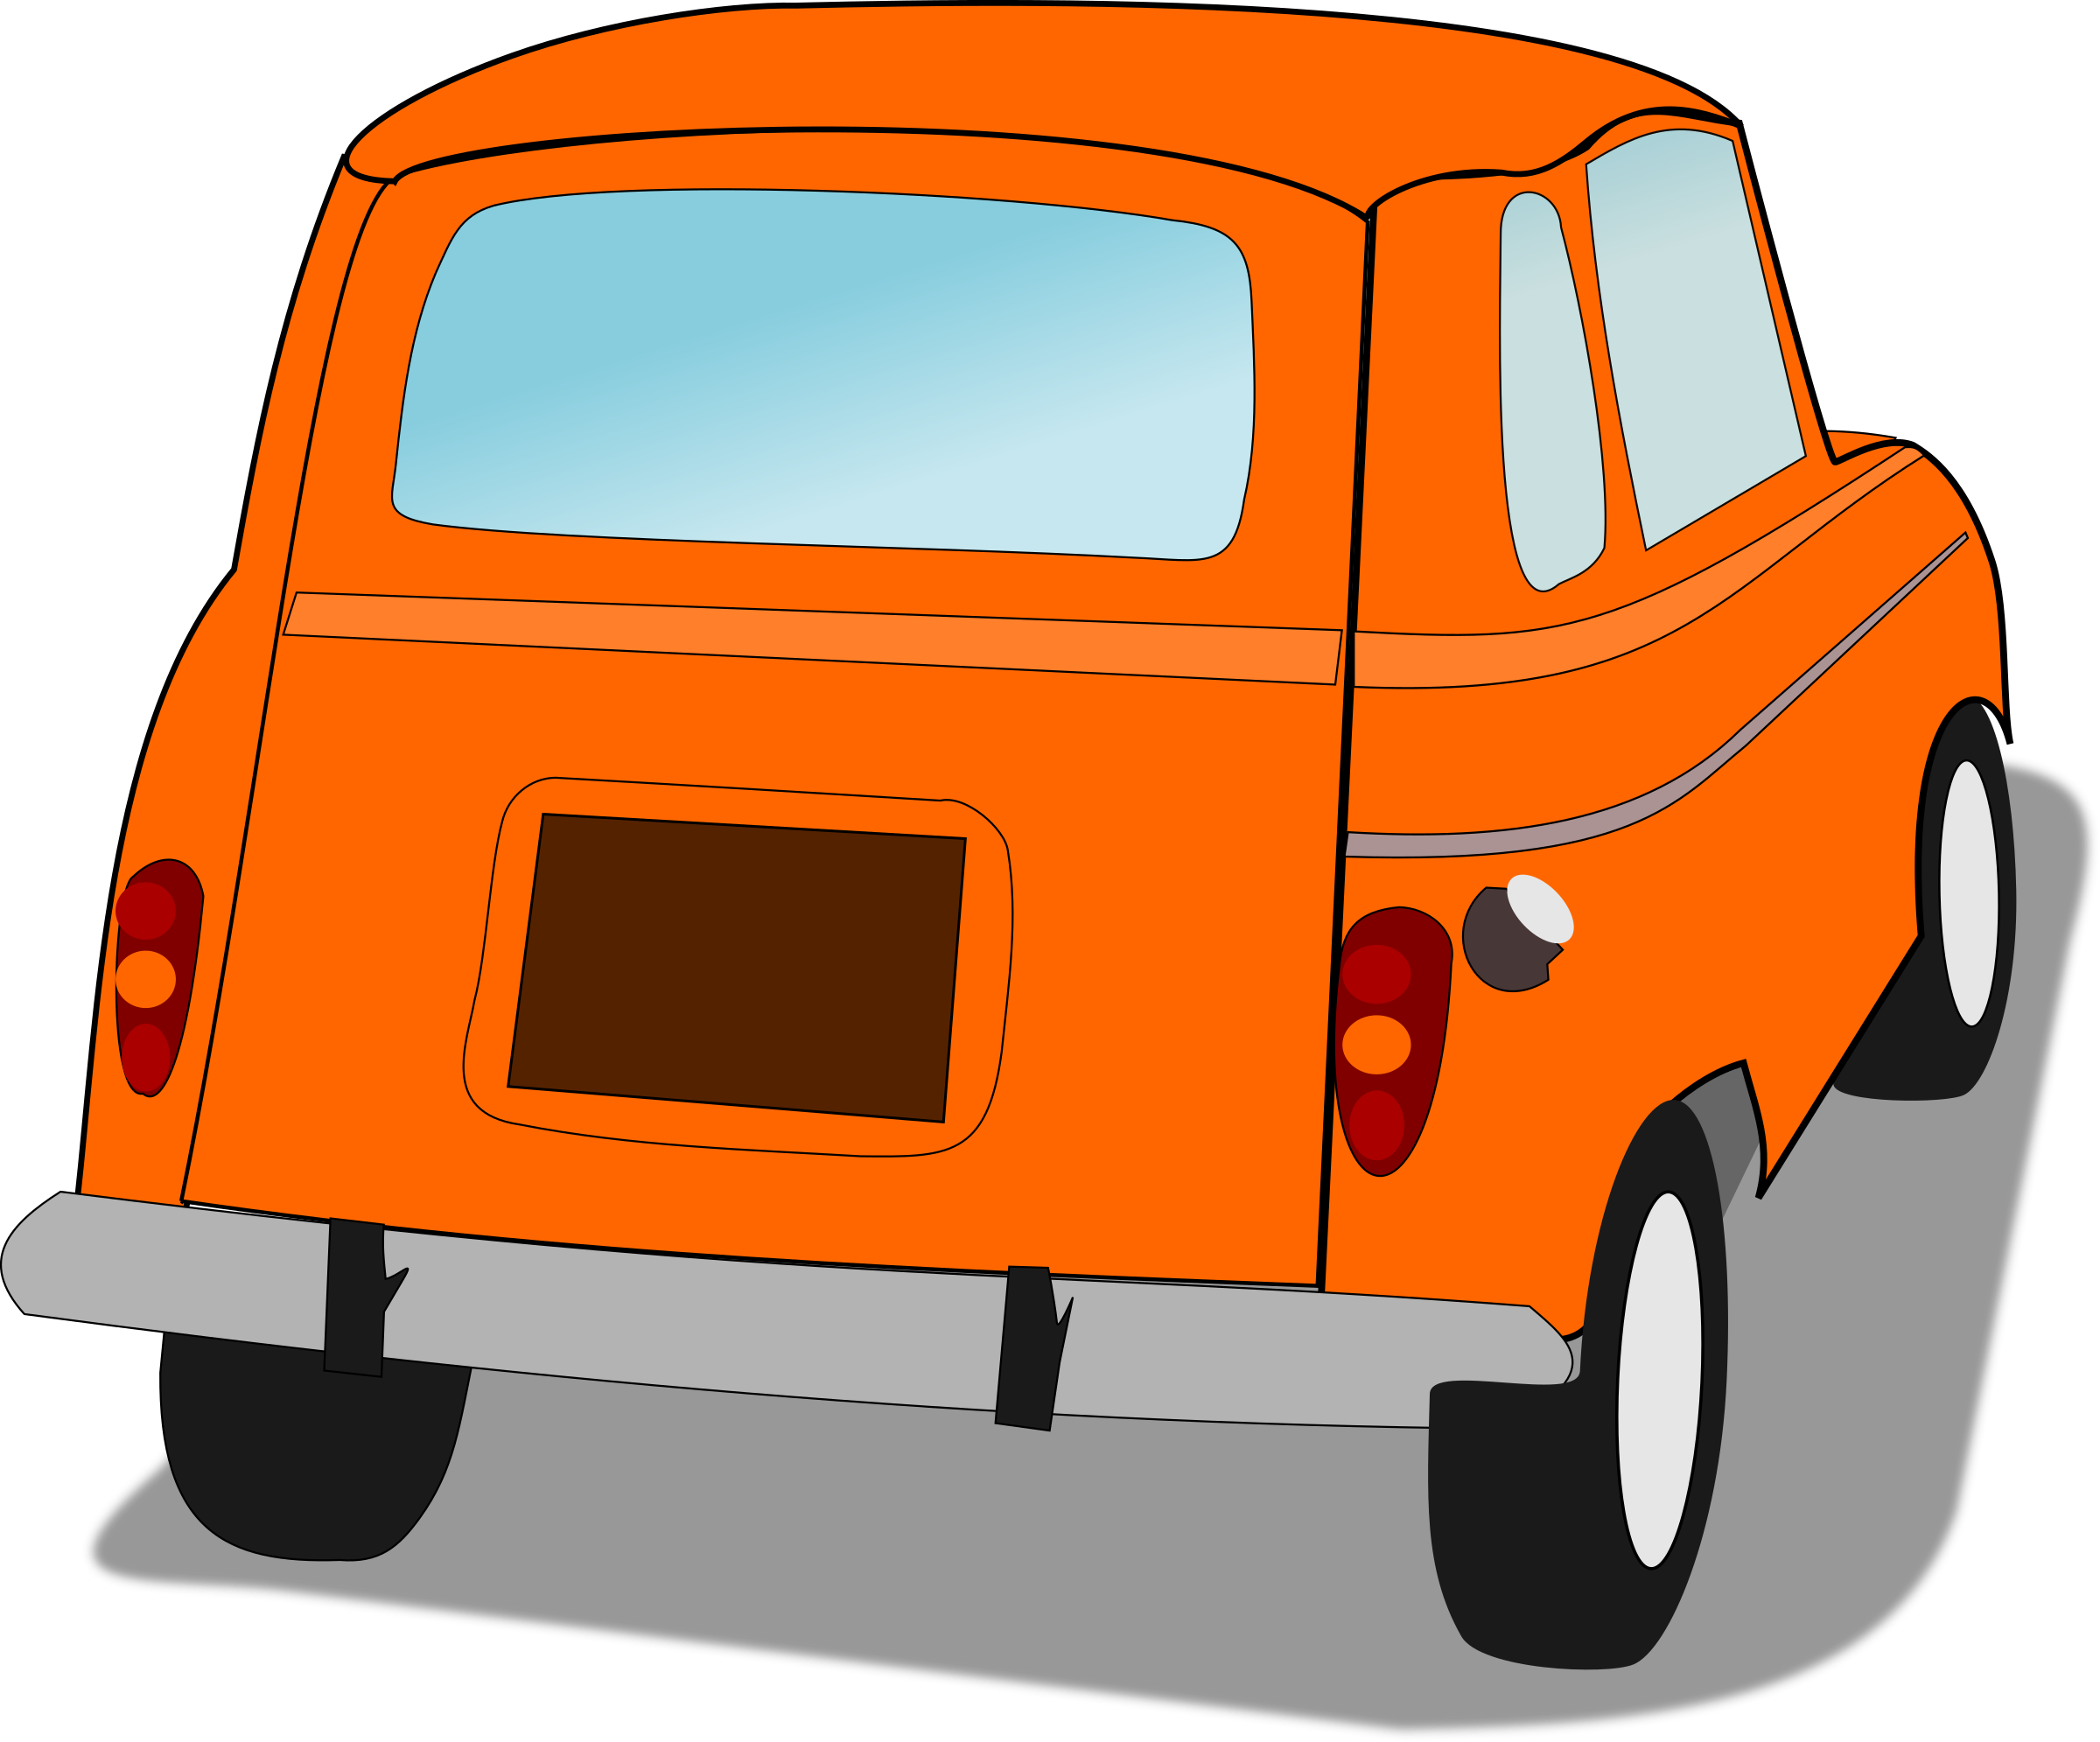 Car with hood open clipart clipart transparent stock openclipart | Cameo | Pinterest clipart transparent stock